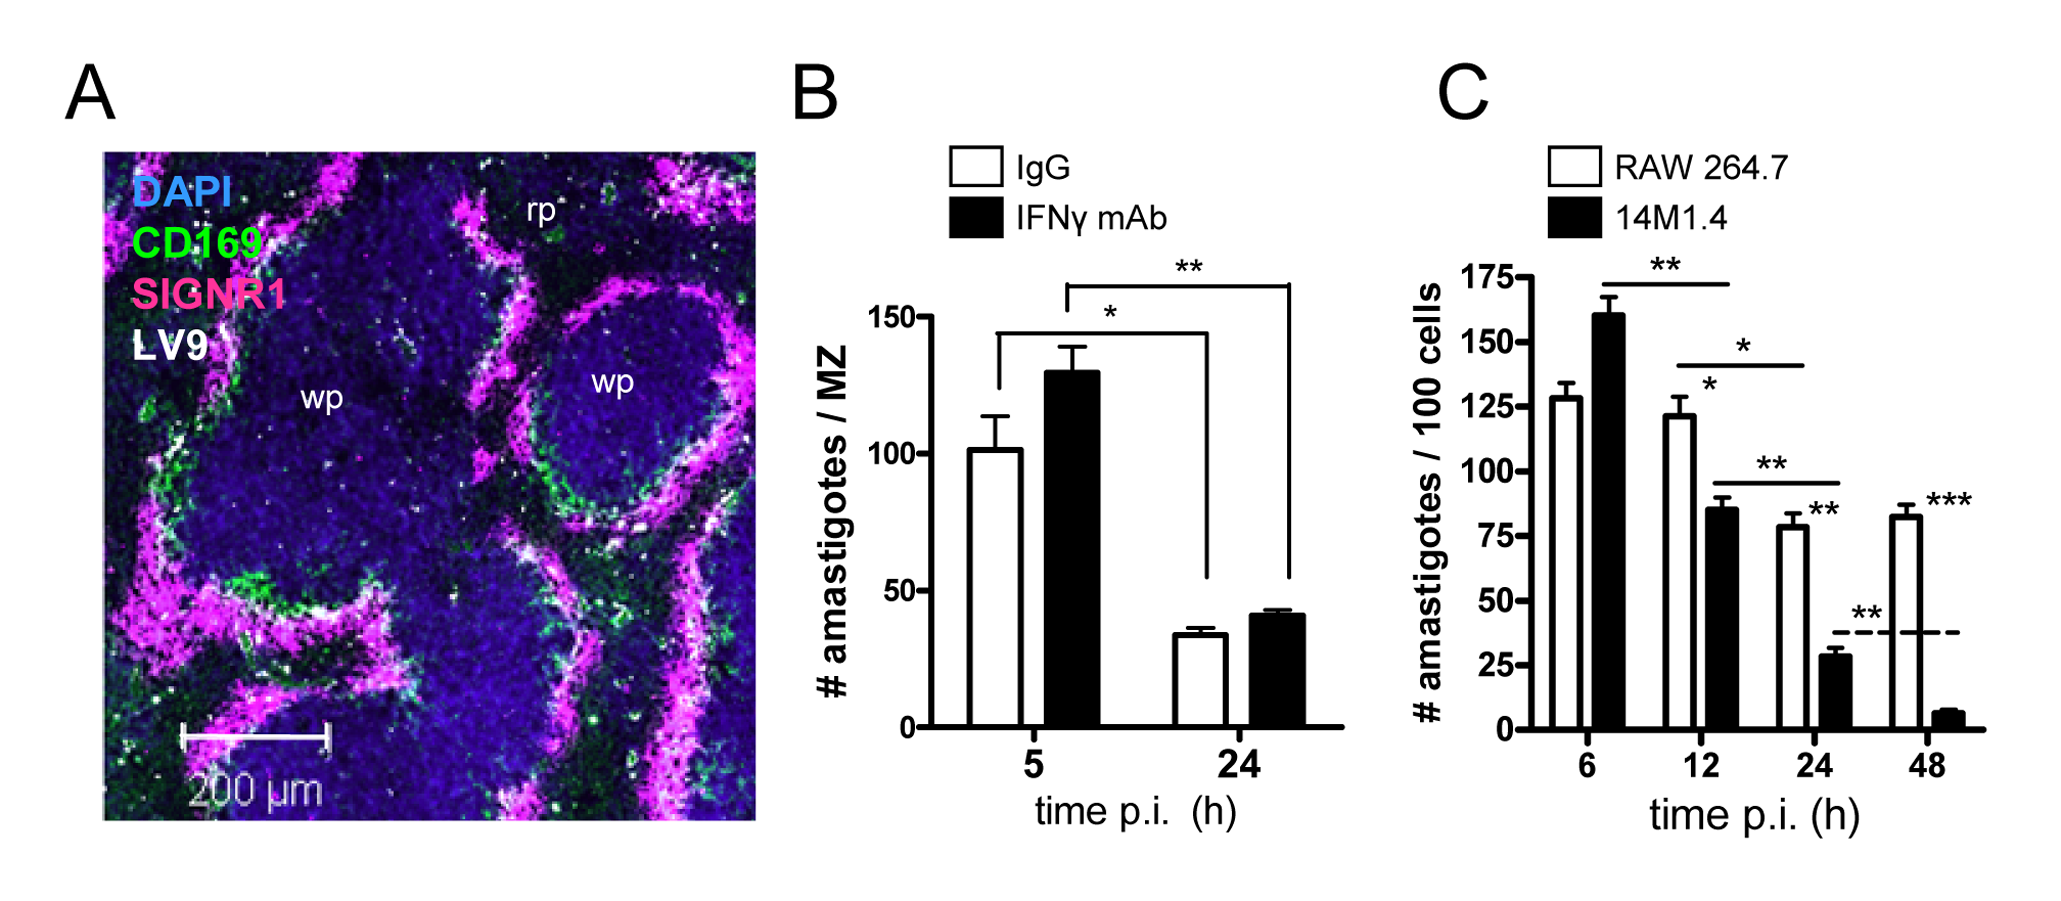 Splenic marginal zone macrophages and marginal metallophilic macrophages control <i>L. donovani</i> by an IFN-γ independent mechanism.